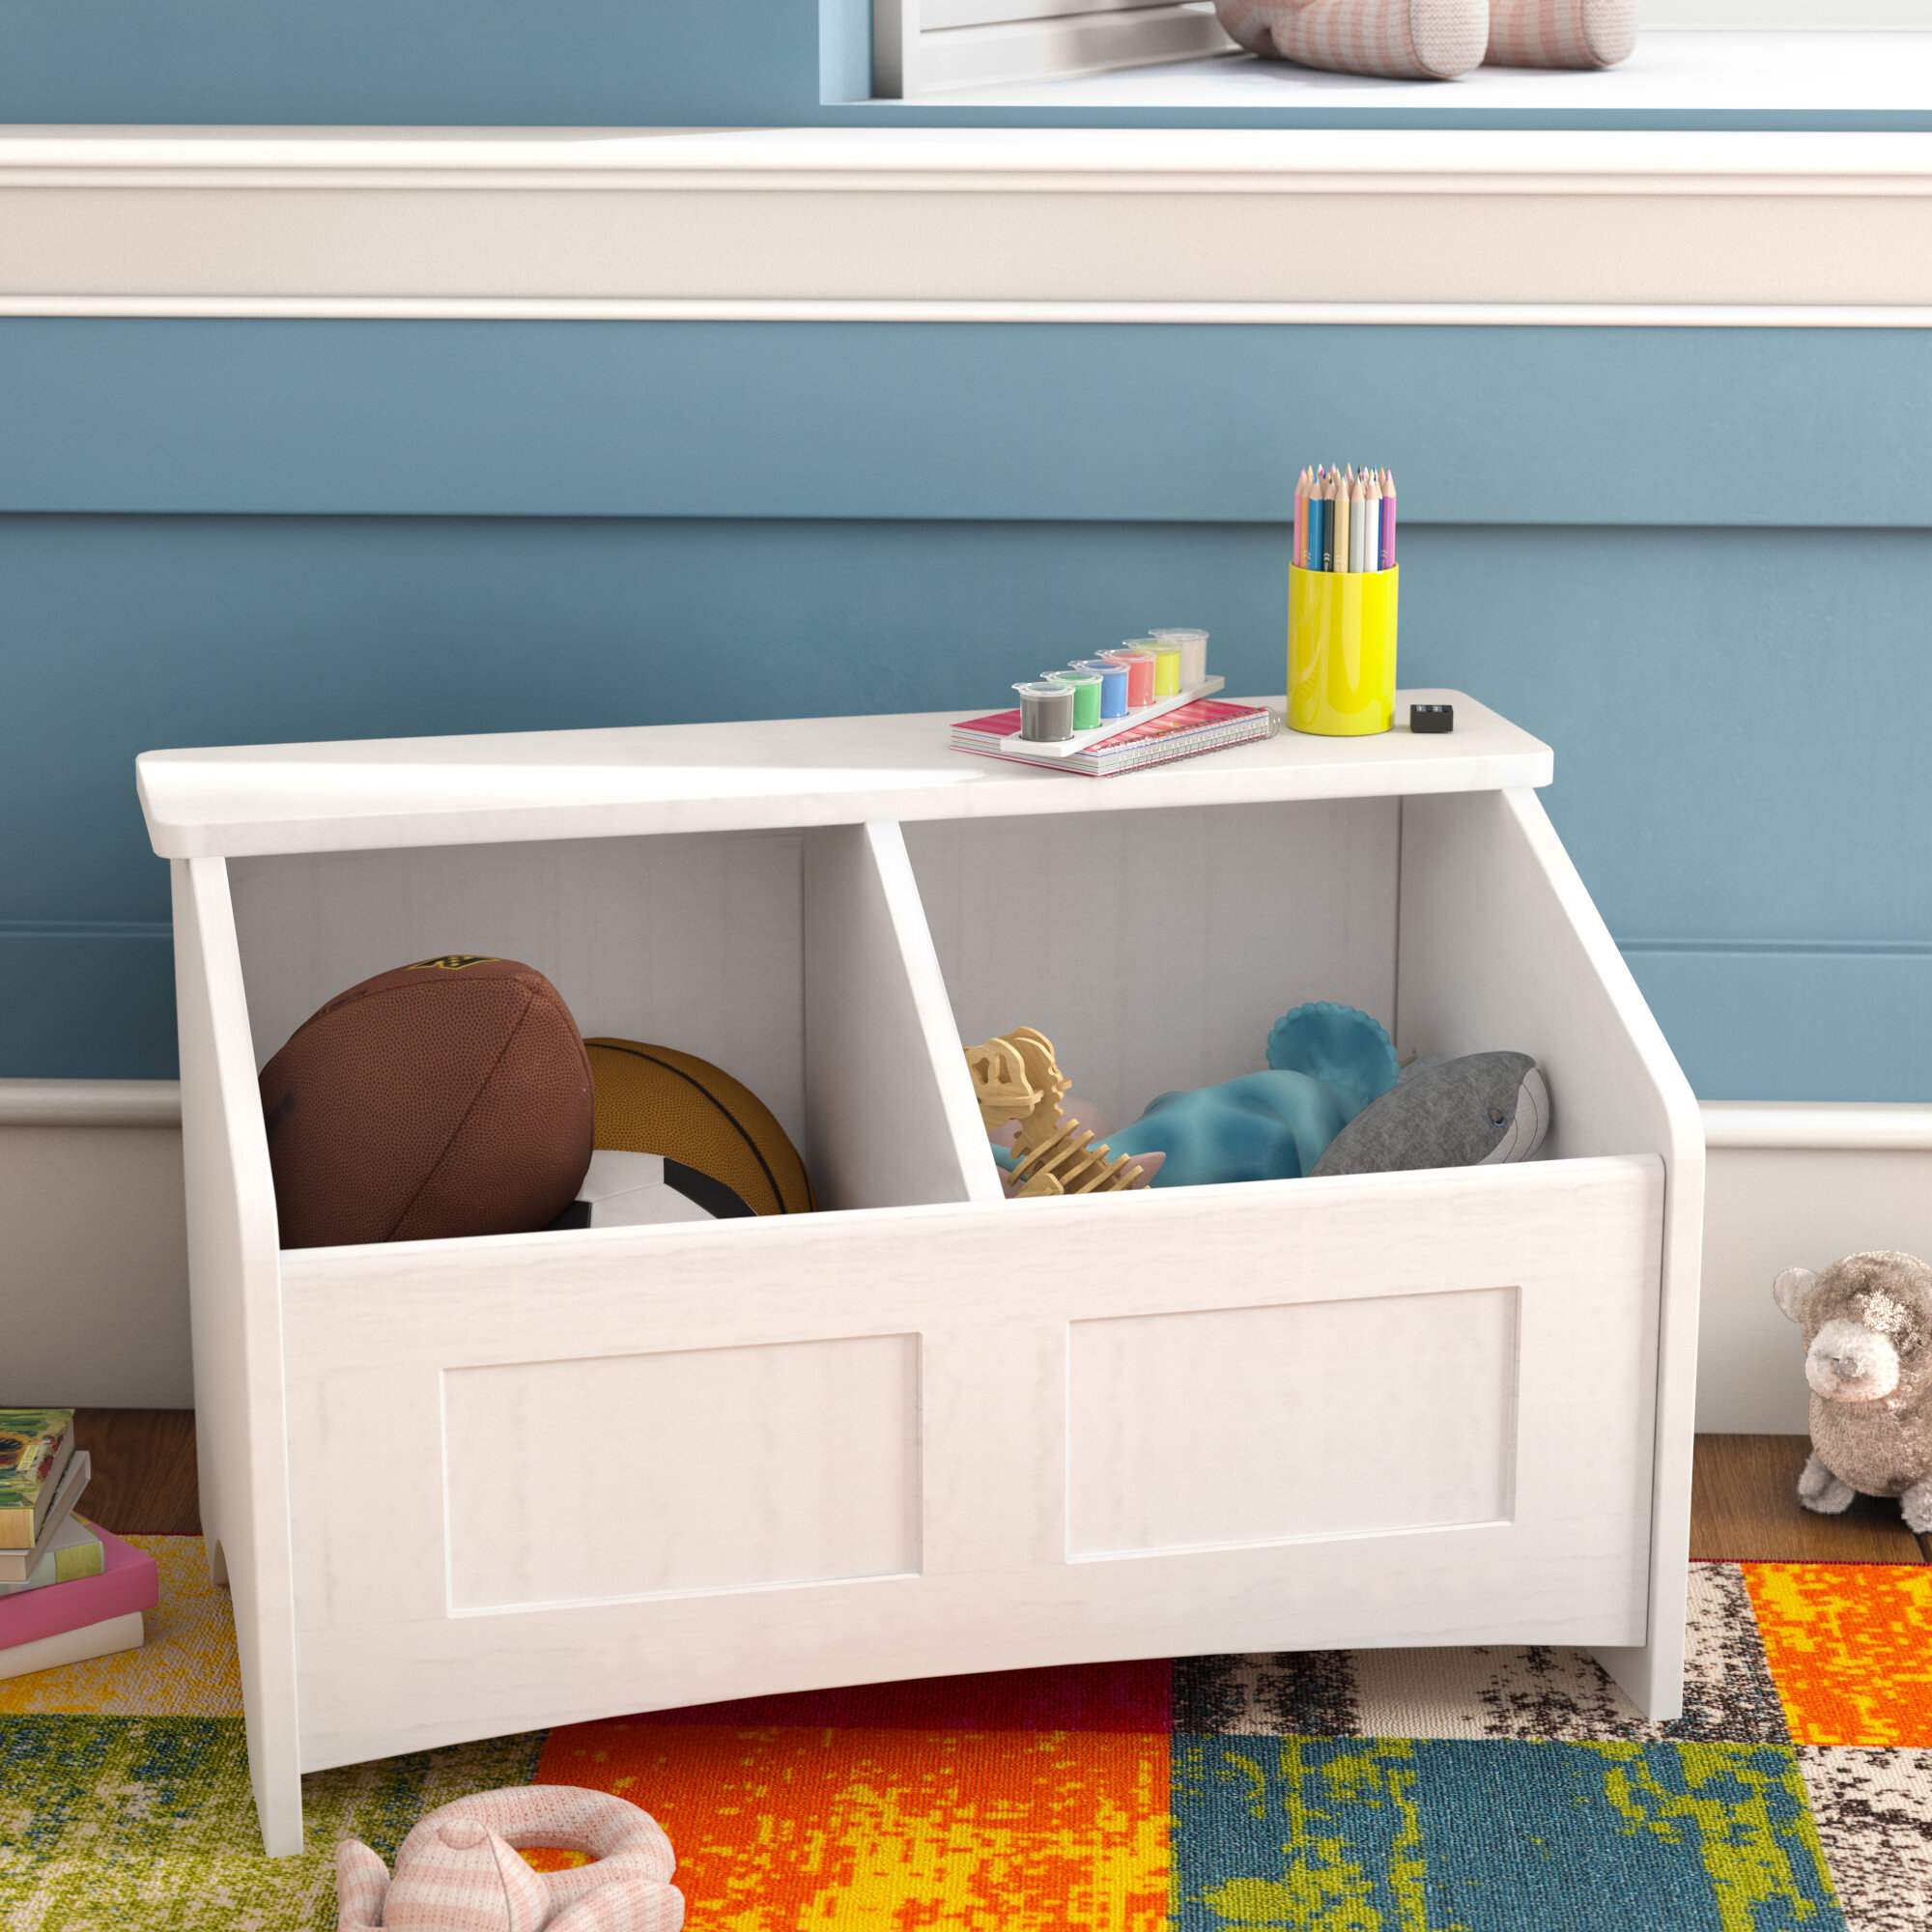 Viv + Rae Christiana Toy Box with Section Divider & Reviews | Wayfair